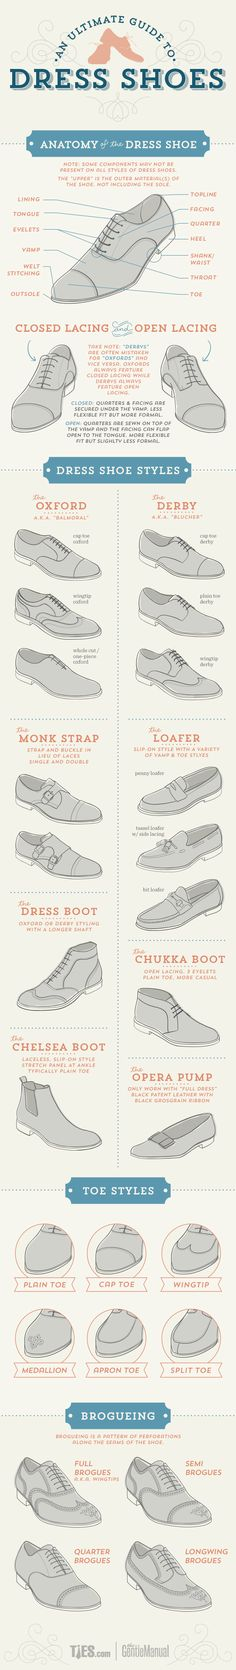 Men's Guide To Dress Shoes. #mensfashion #fashion #style